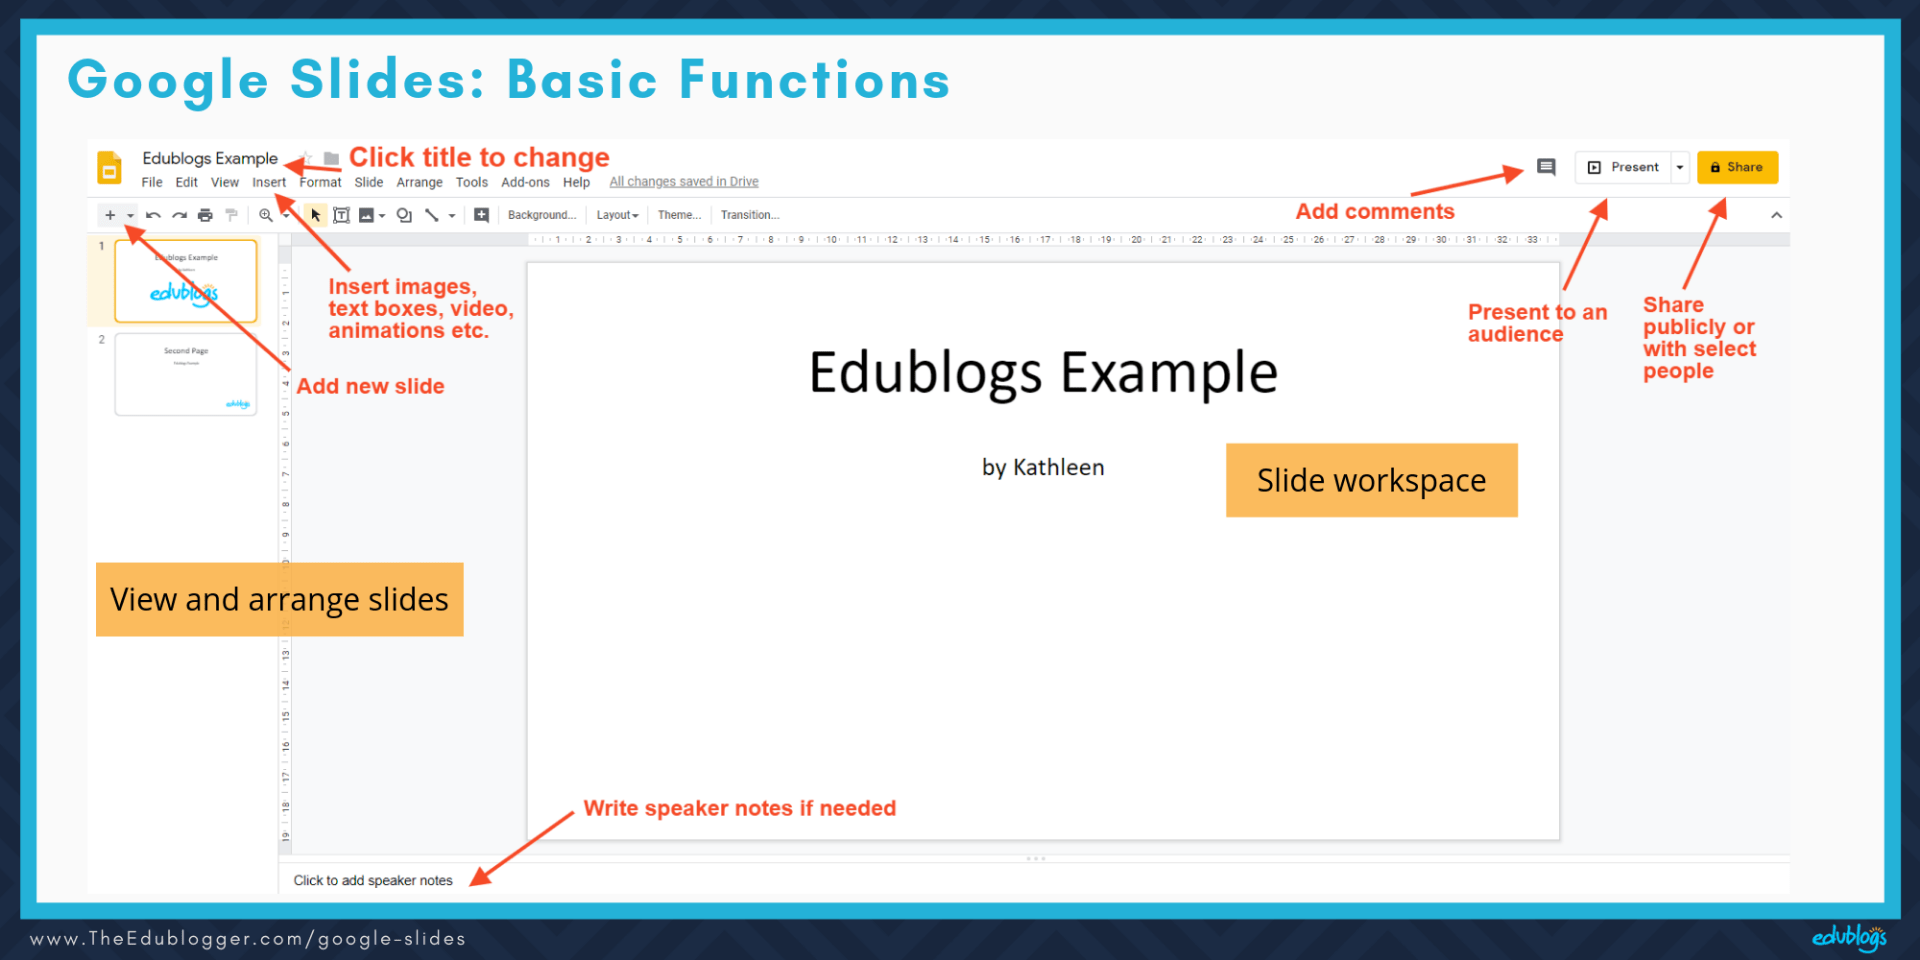 Screenshot of Google Slides showing basic buttons